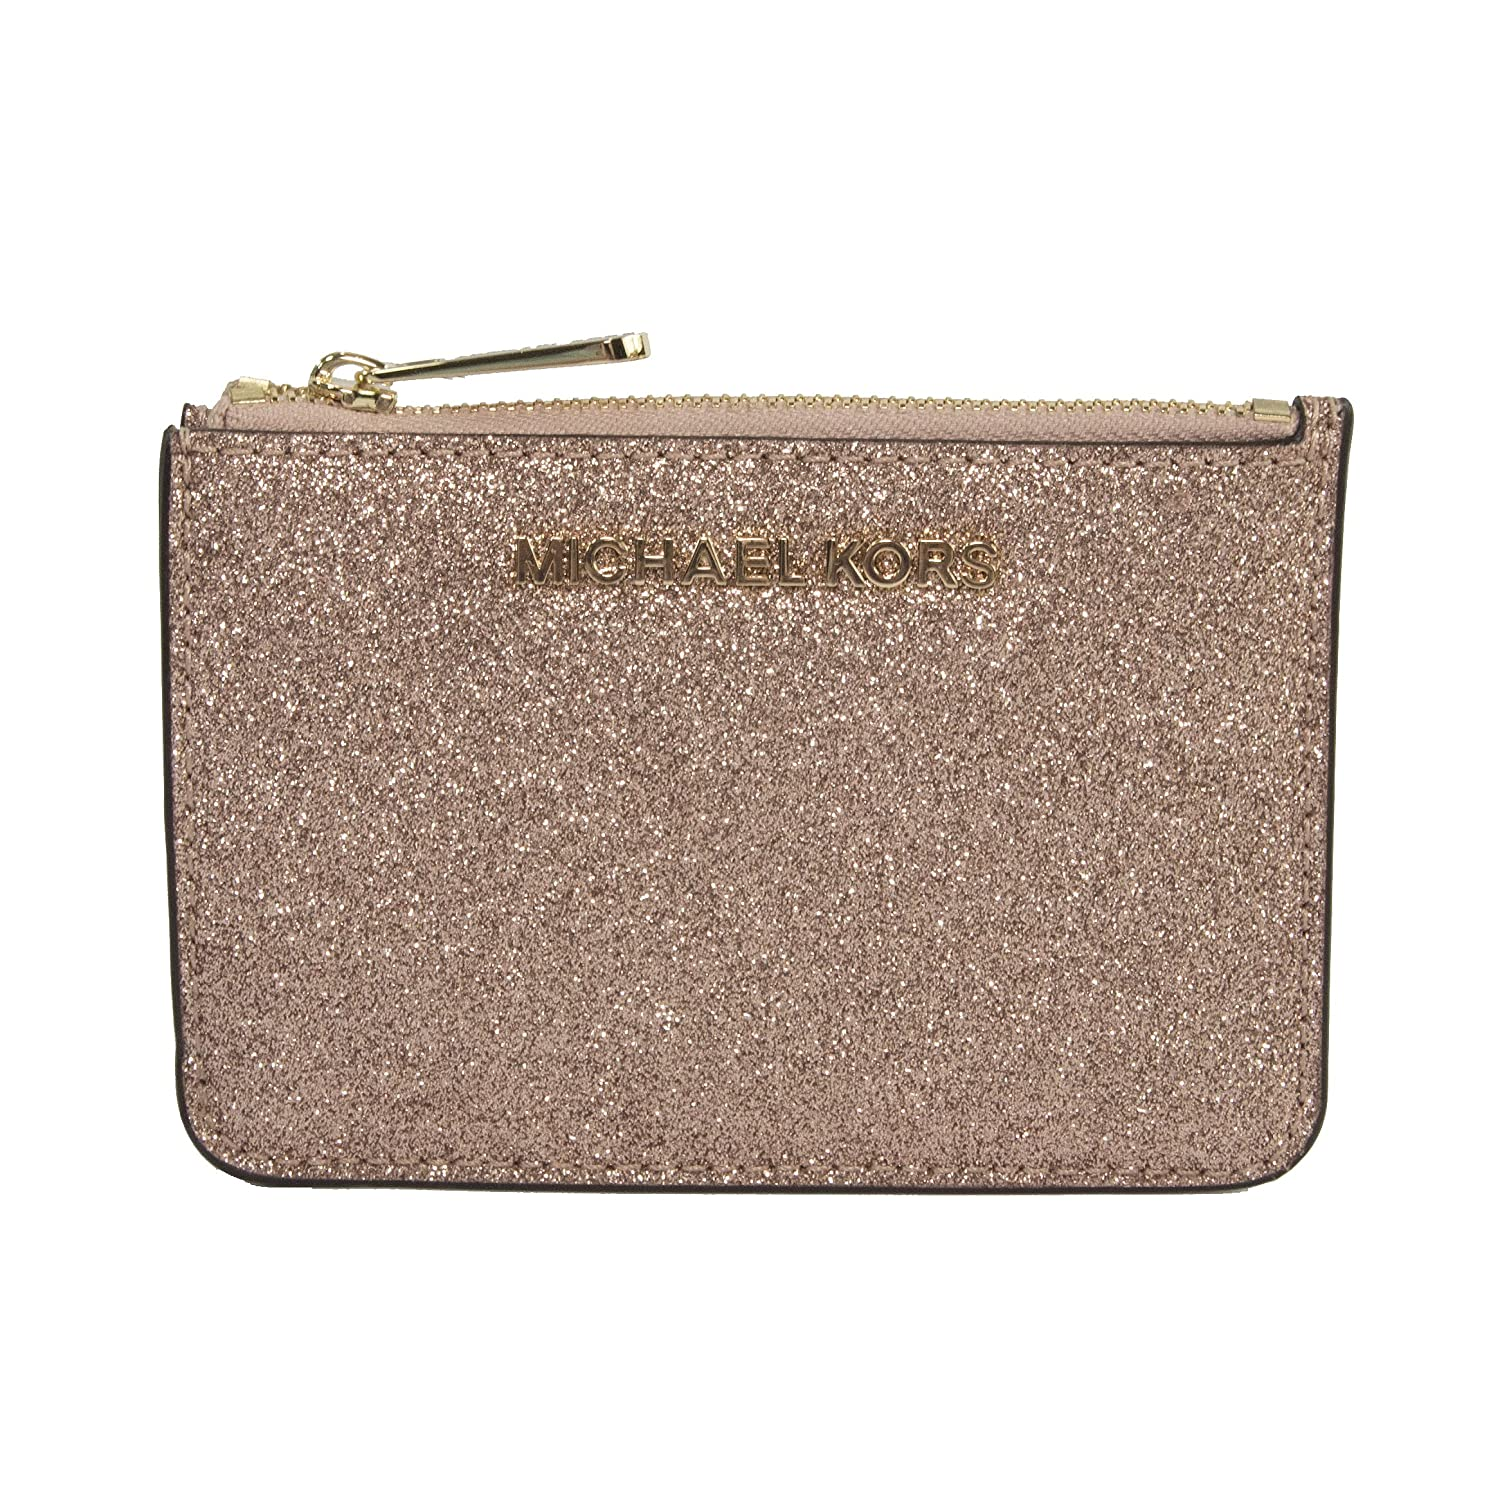 d0f89e4437b7 Michael Kors Rose Gold Glitter Leather Jet Set Card Case Key Pouch Wallet   Amazon.co.uk  Clothing